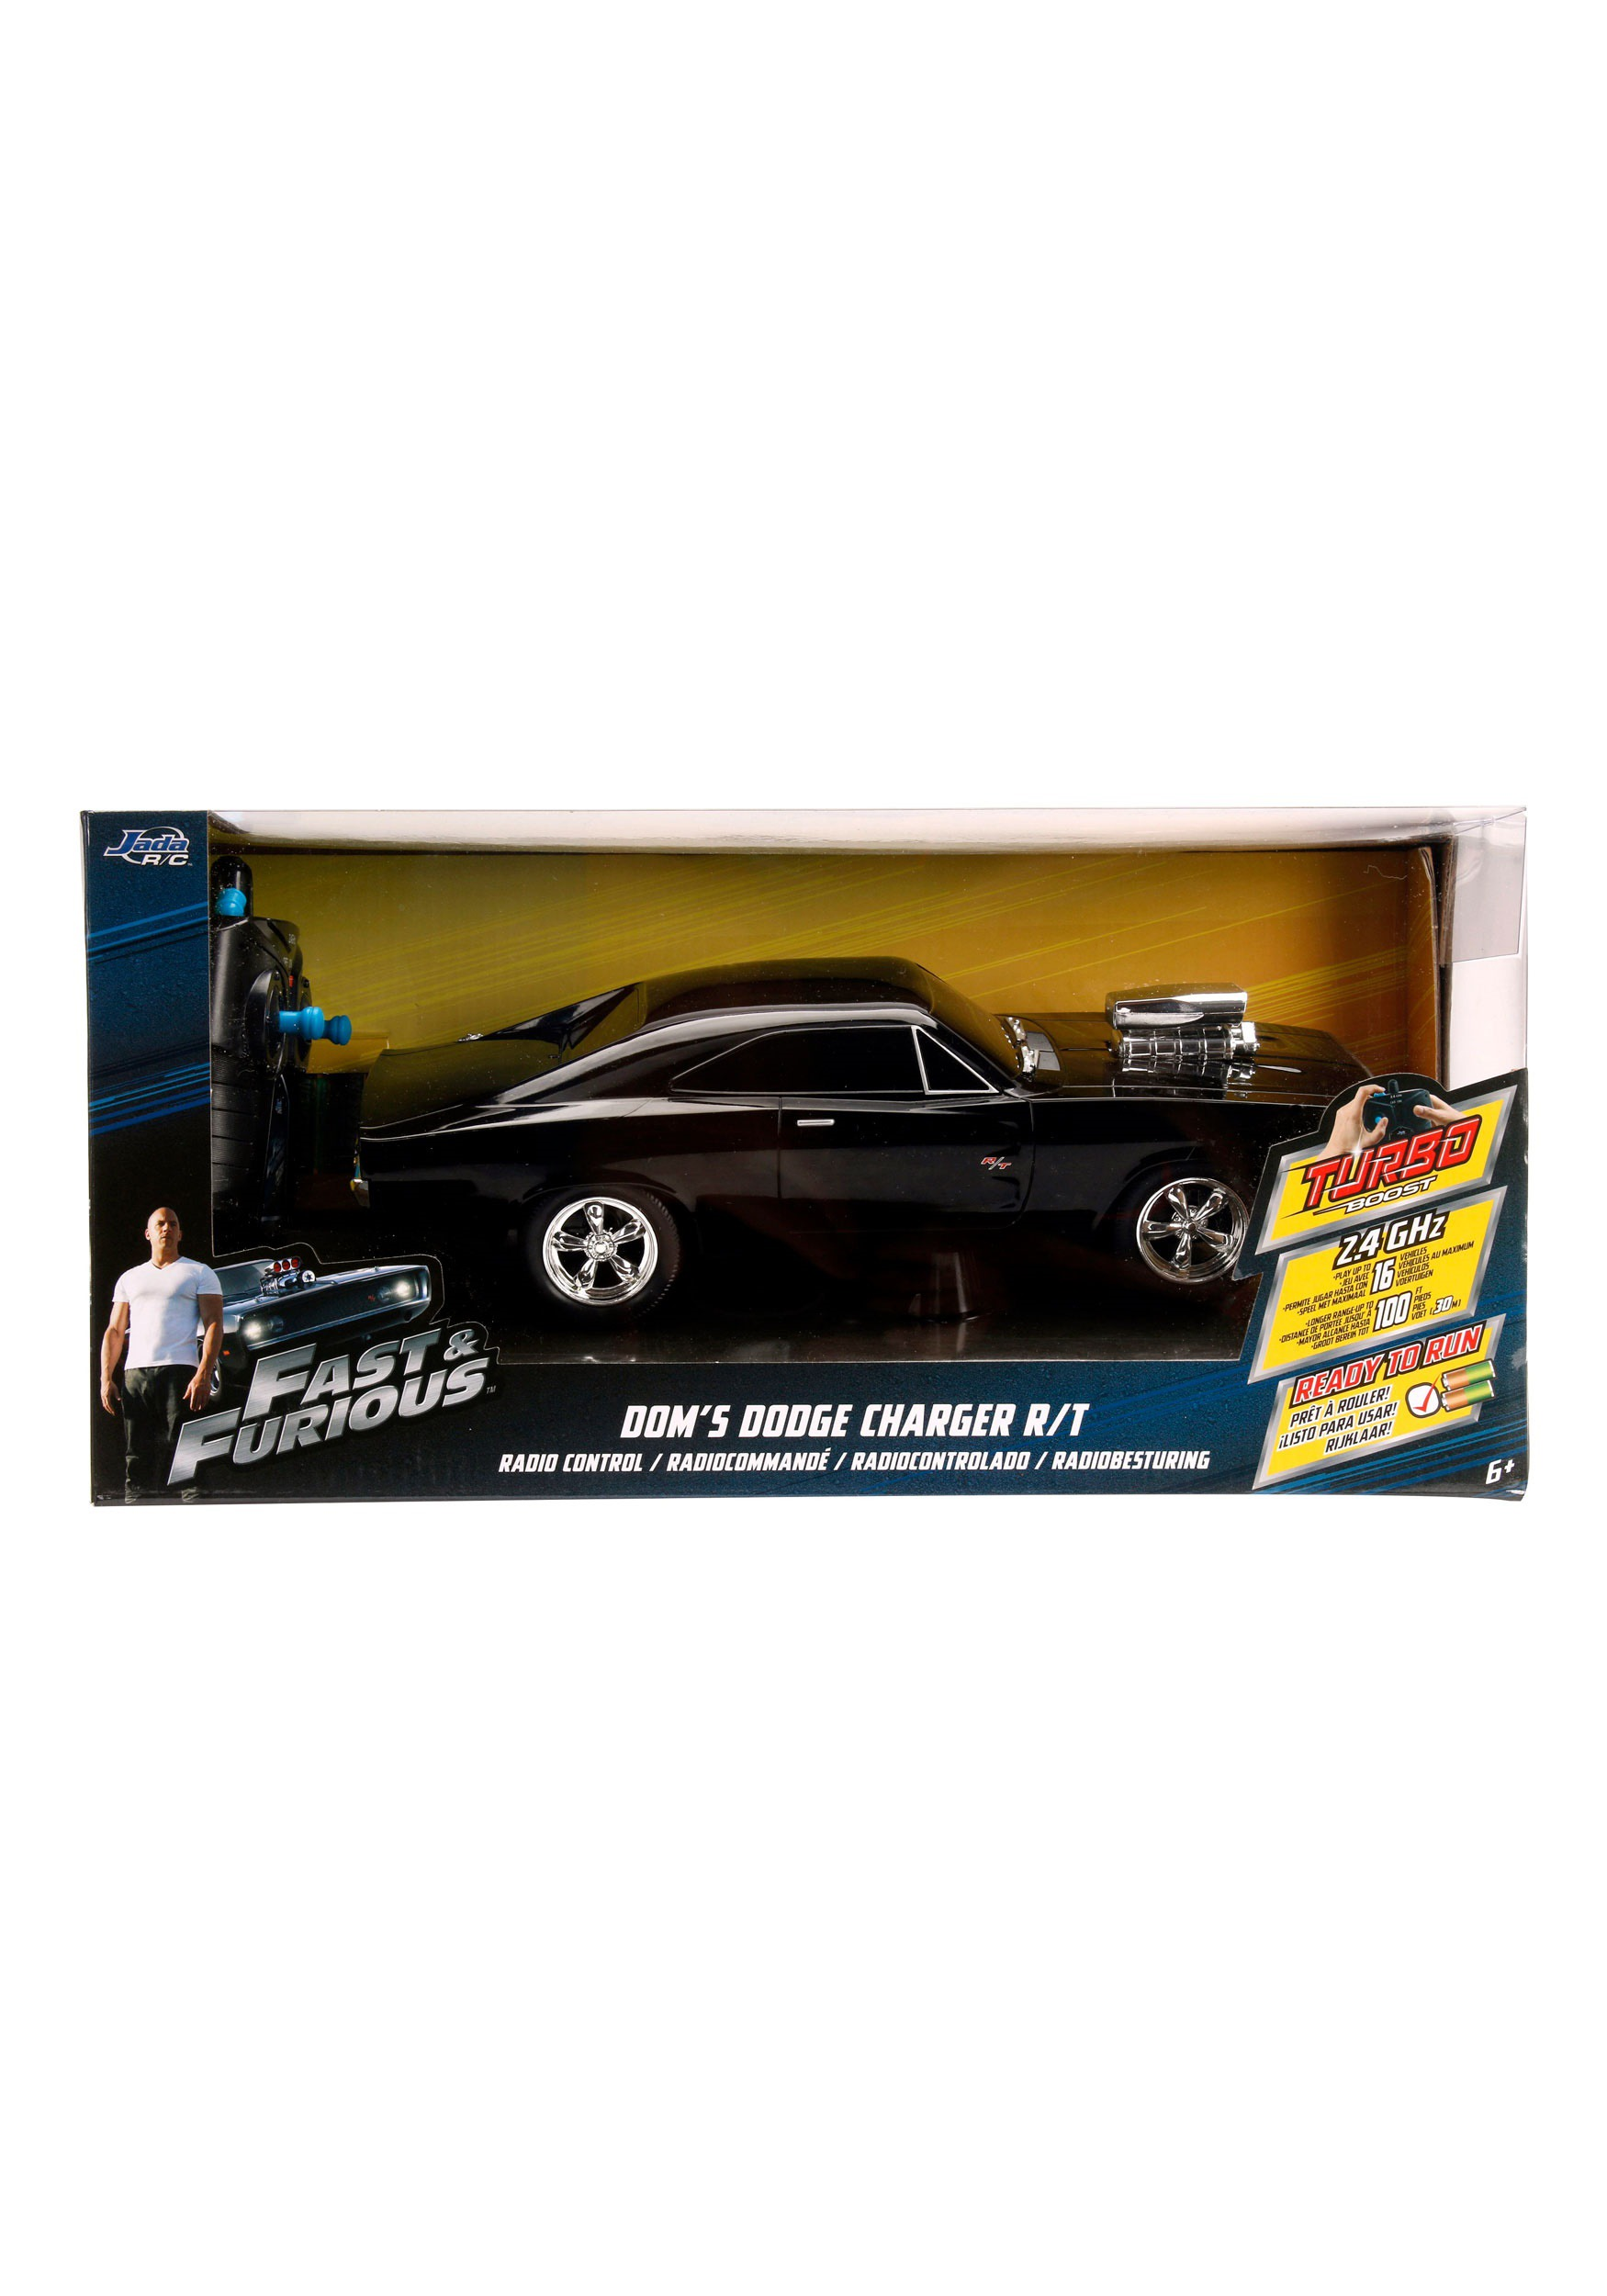 Fast And Furious Cars For Sale >> Fast & the Furious Dodge Charger 1:16 RC